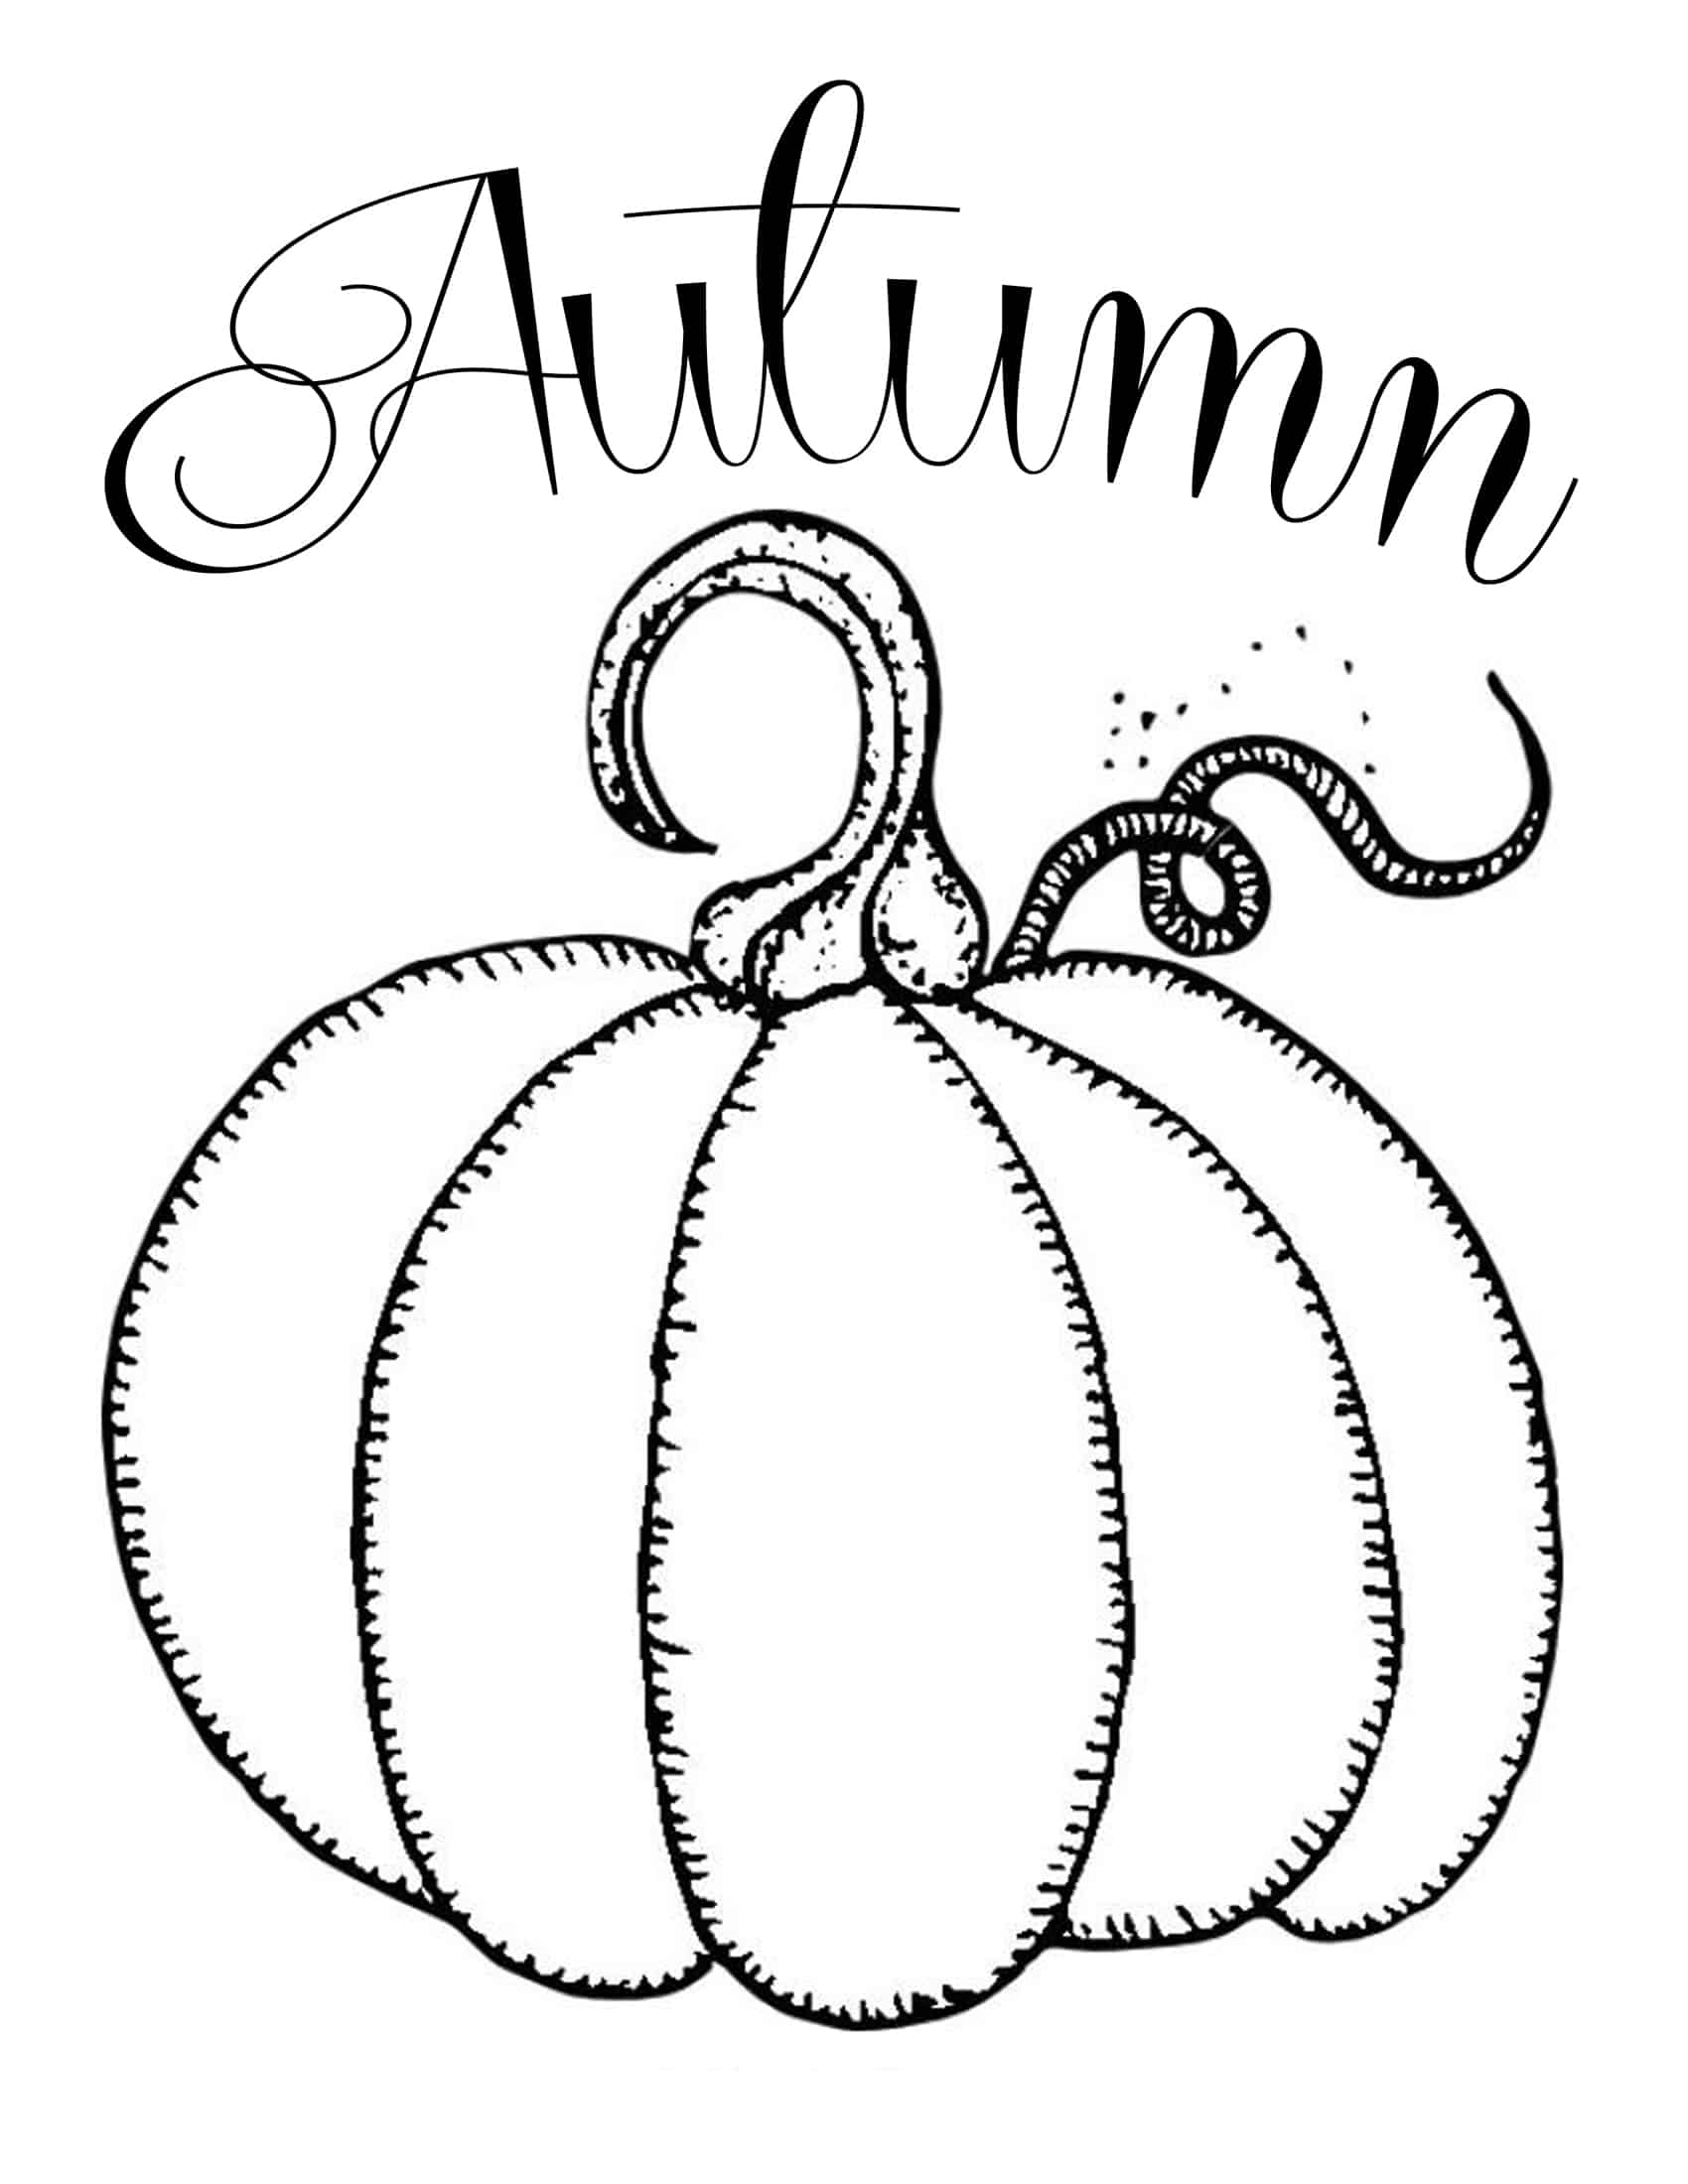 pumpkin coloring pages free printable free printable pumpkin coloring pages for kids cool2bkids free printable pumpkin coloring pages